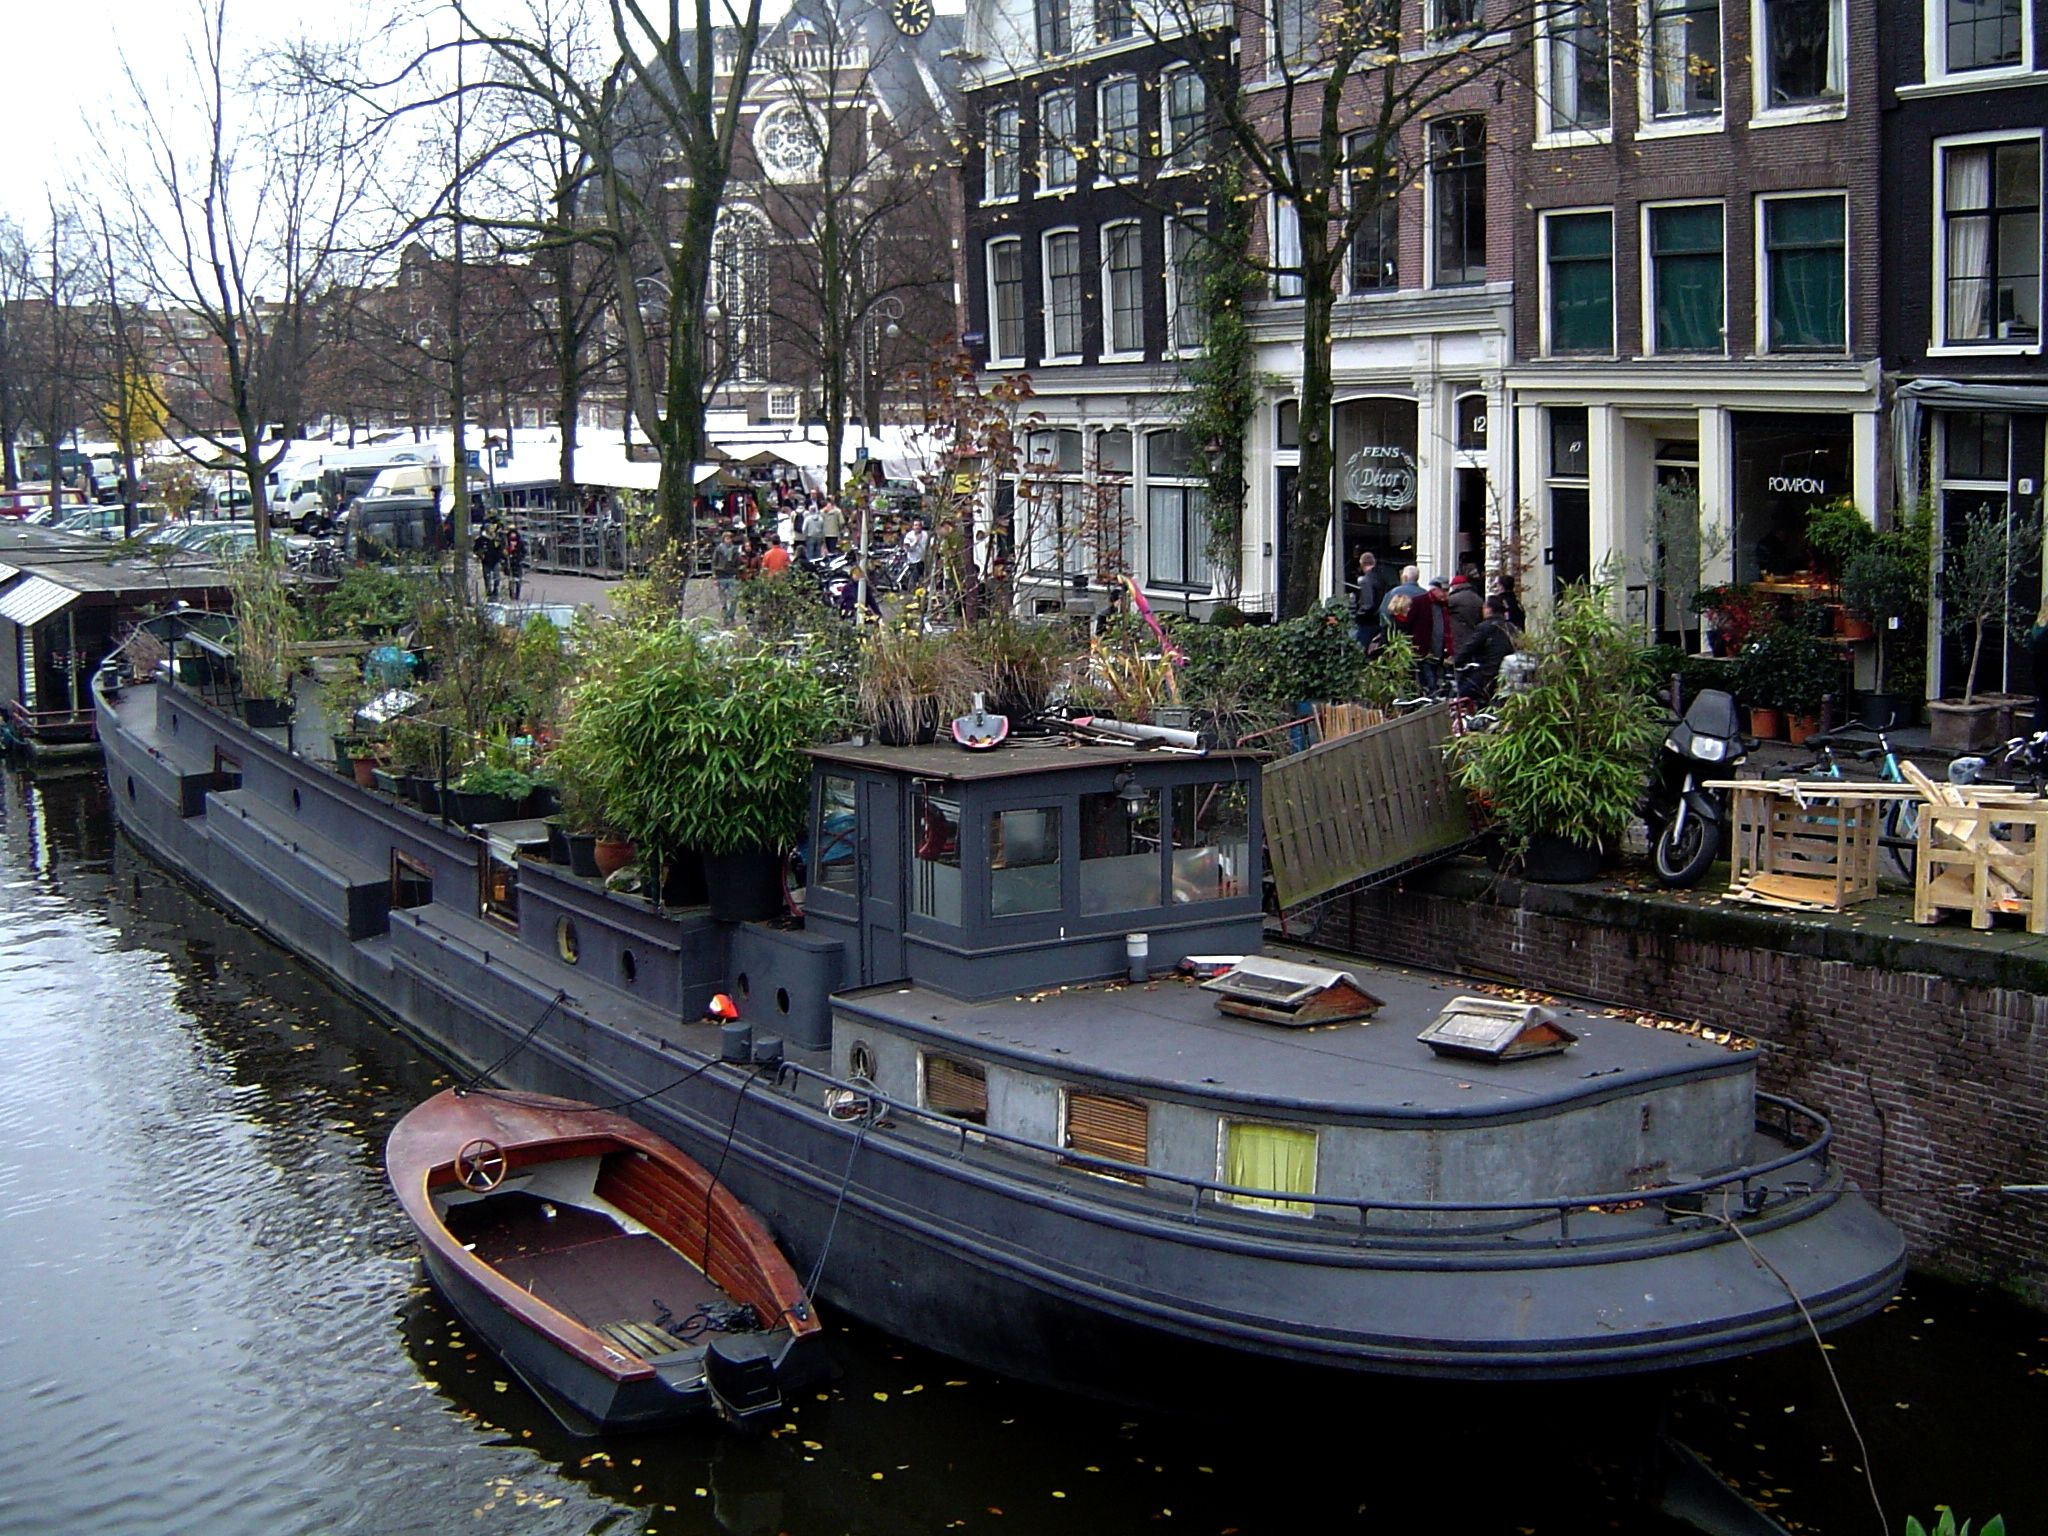 Houseboat, dutch barge with lots of foliage, makes the